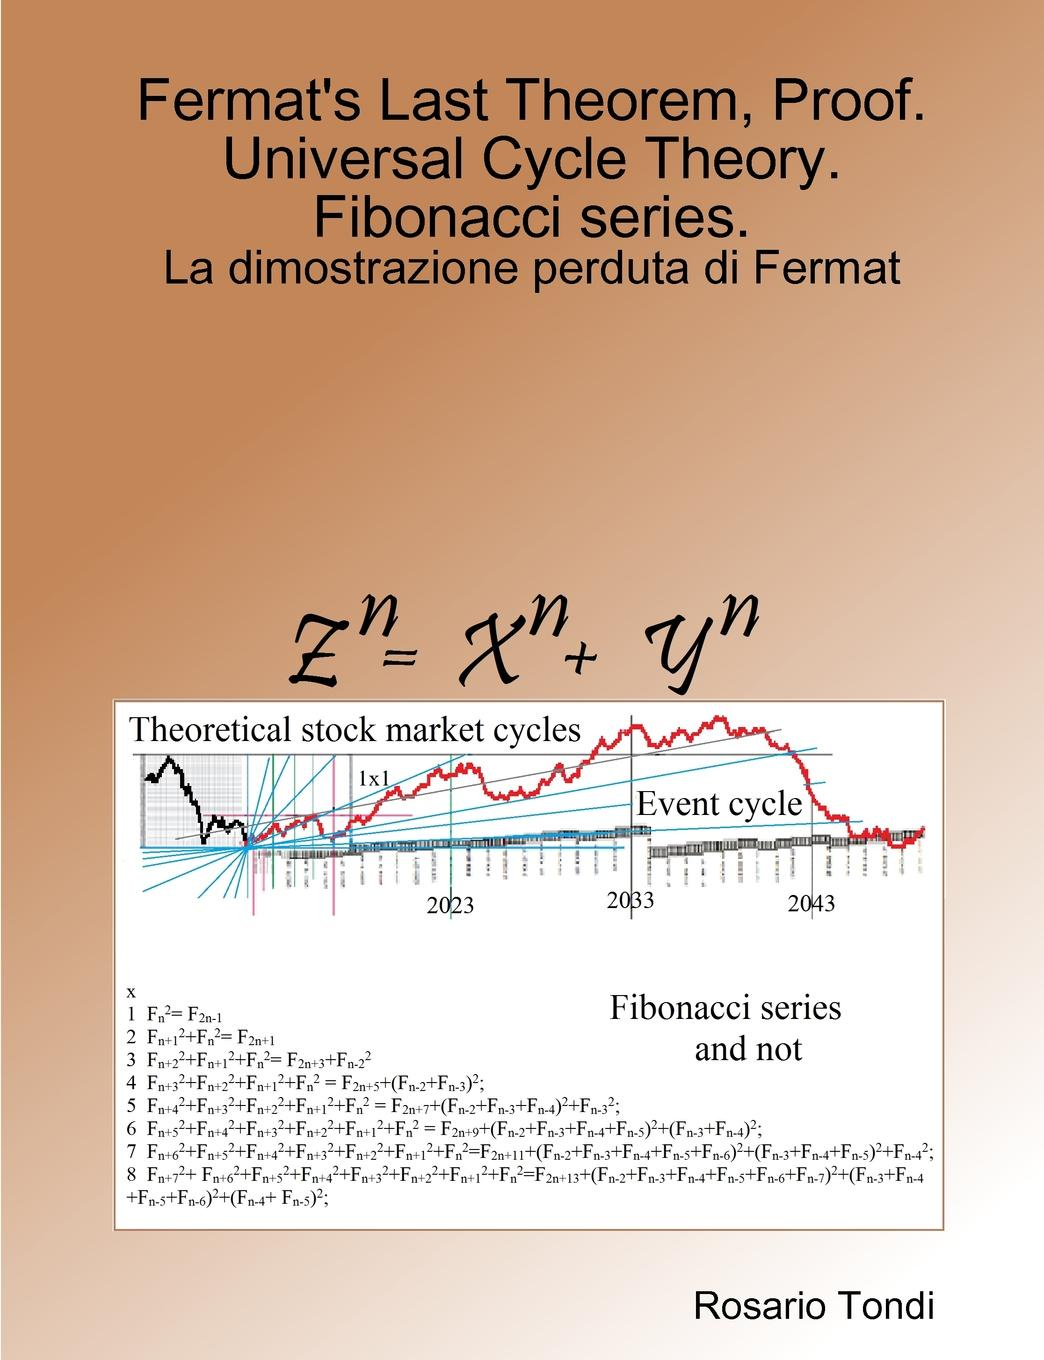 Rosario Tondi Fermat.s Last Theorem, Proof. Universal Cycle Theory. Fibonacci series. david cox a primes of the form x2 ny2 fermat class field theory and complex multiplication